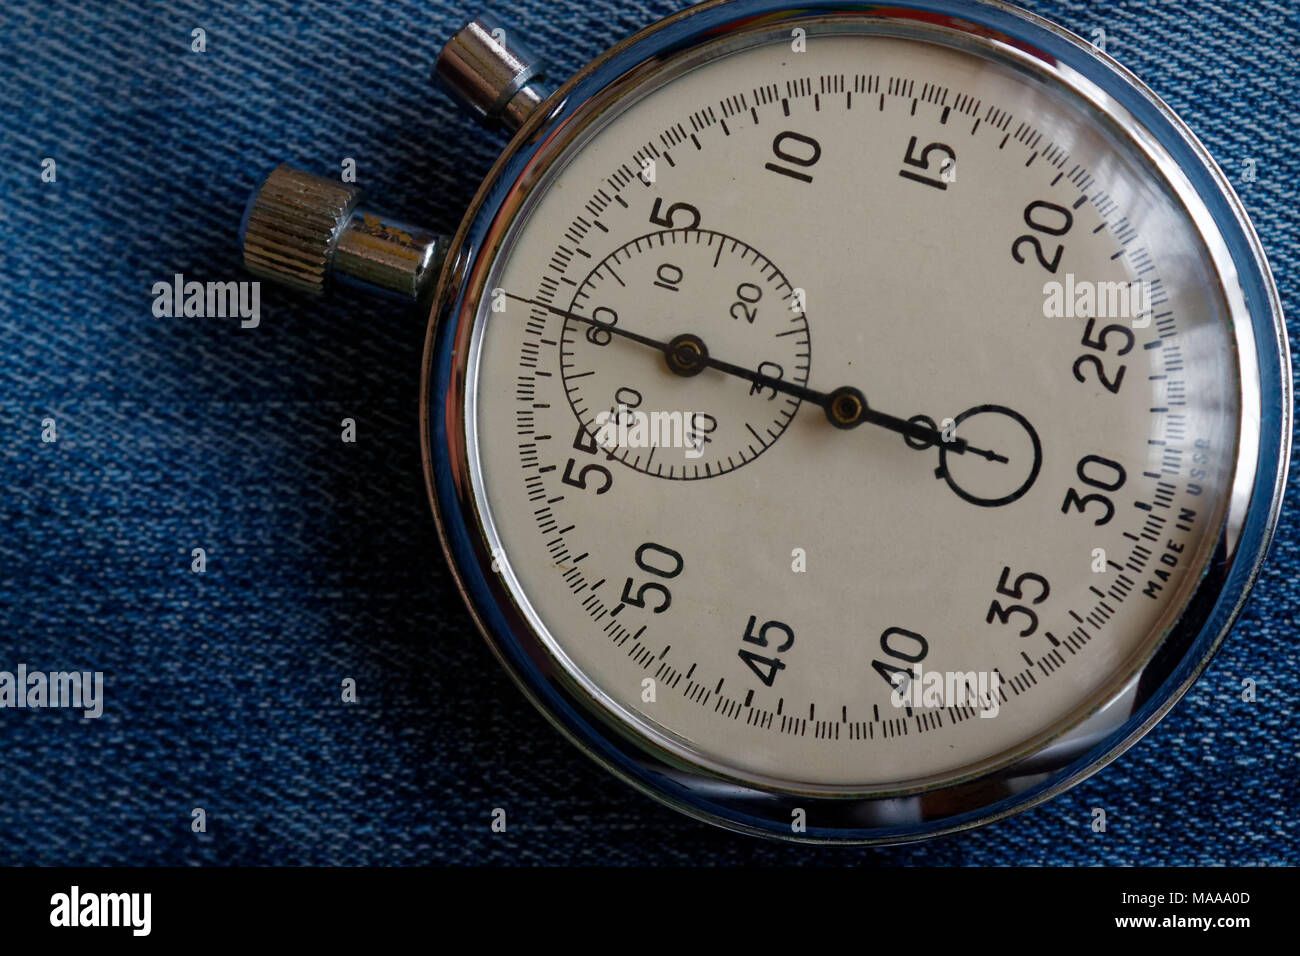 stopwatch on worn blue jeans background value measure time old